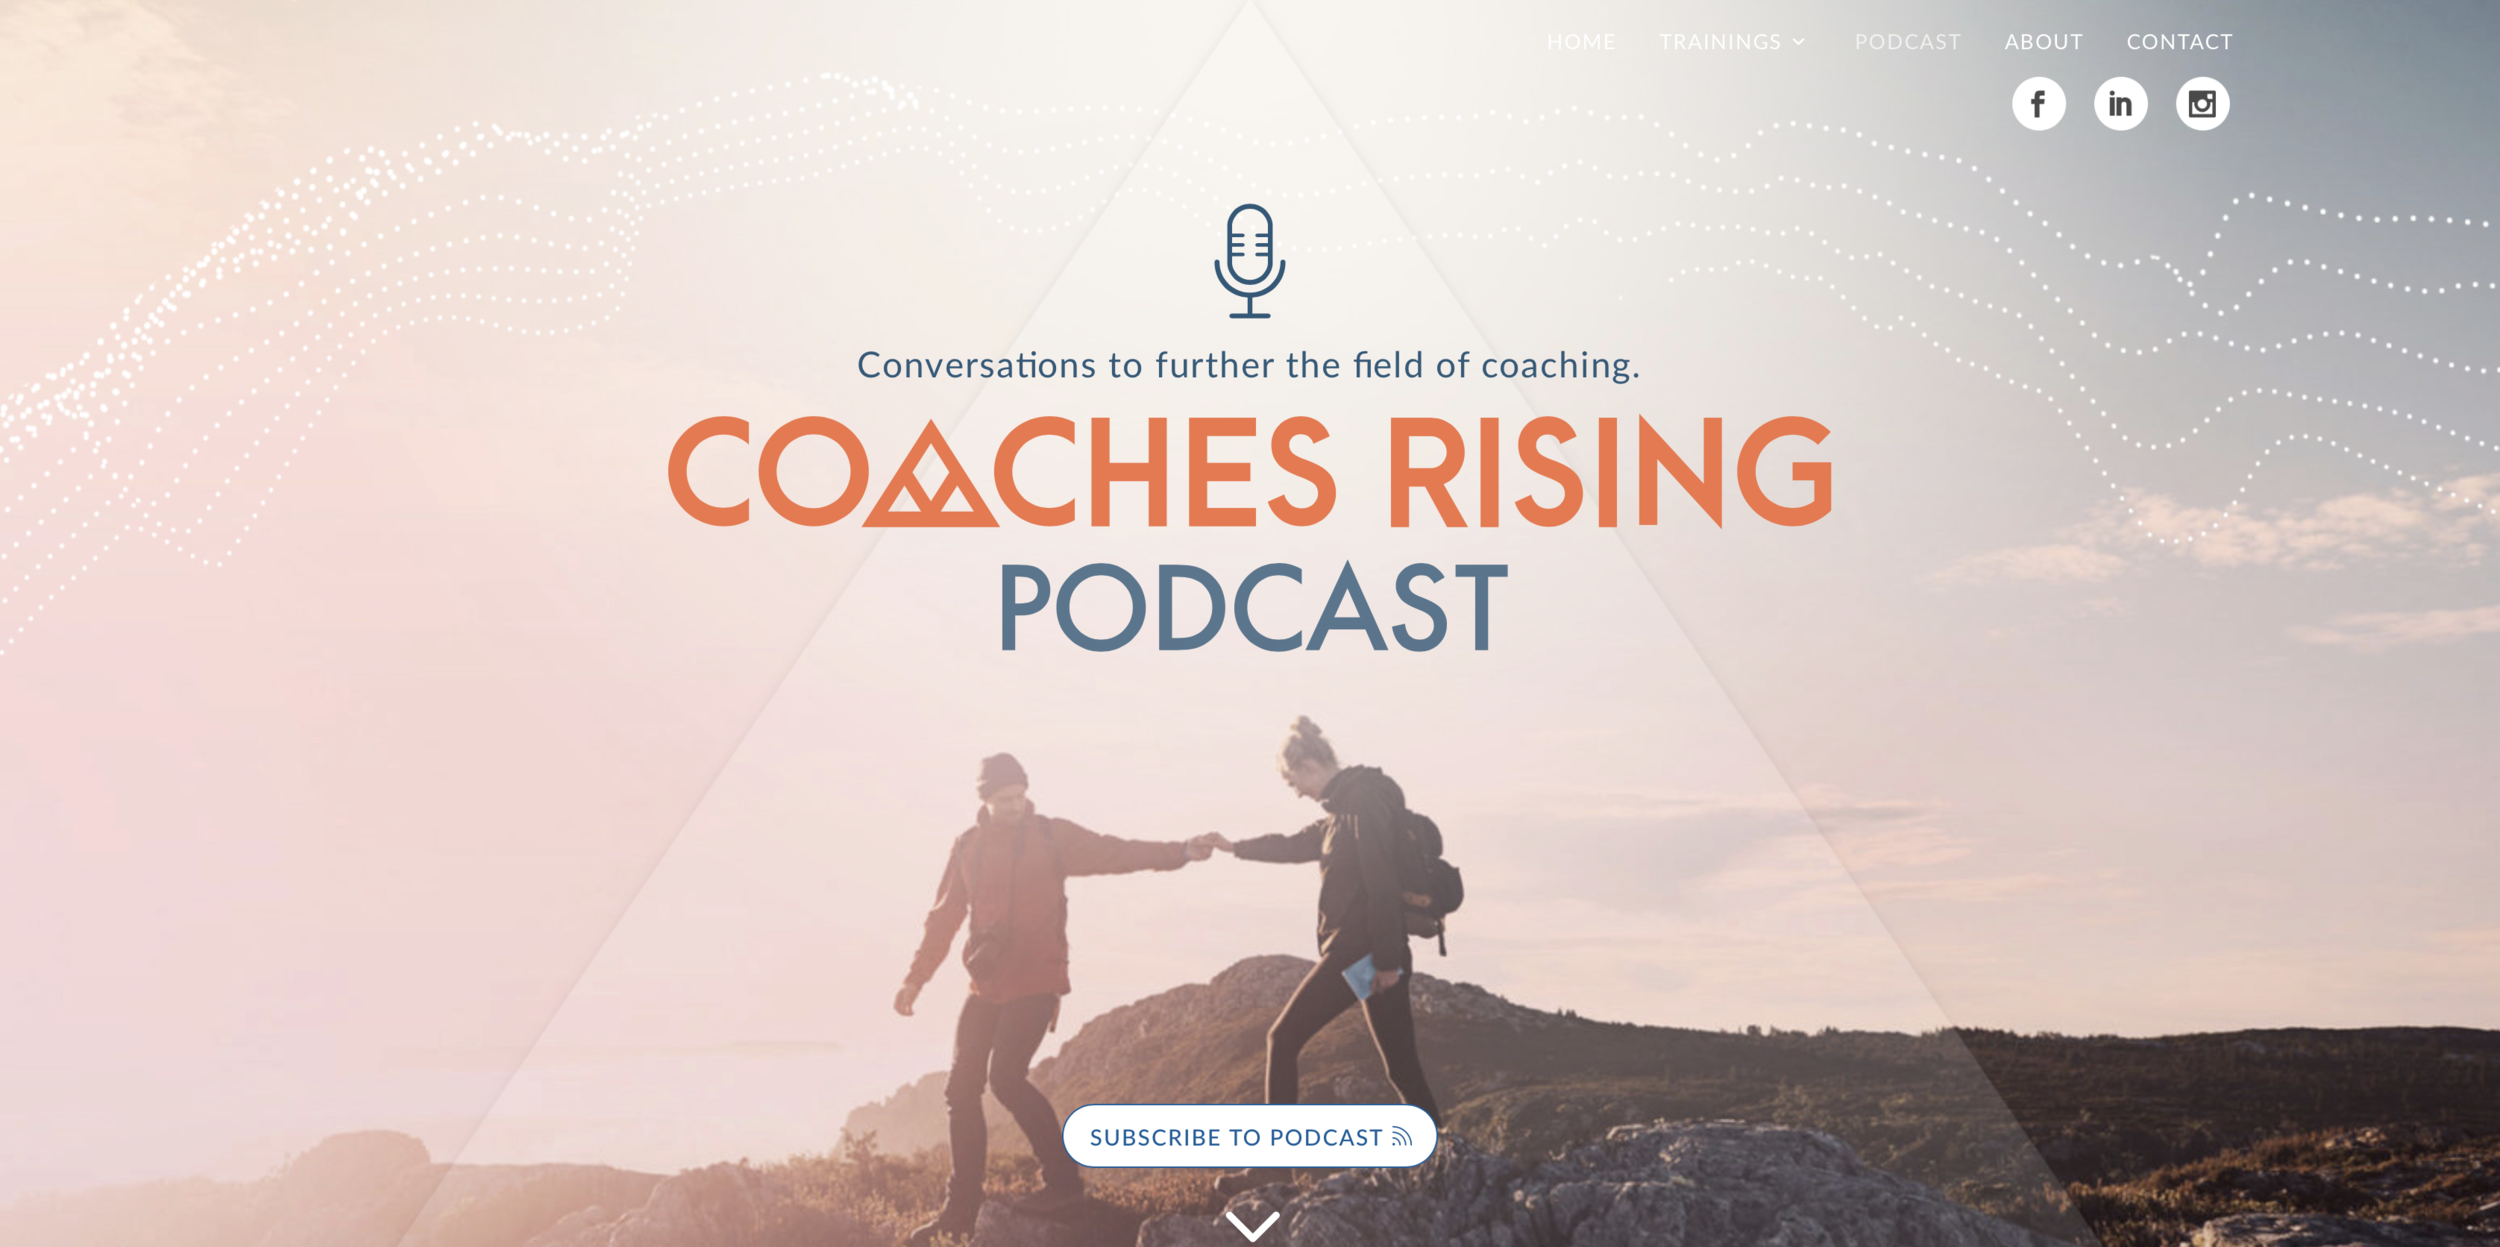 Coaches Rising Podcast